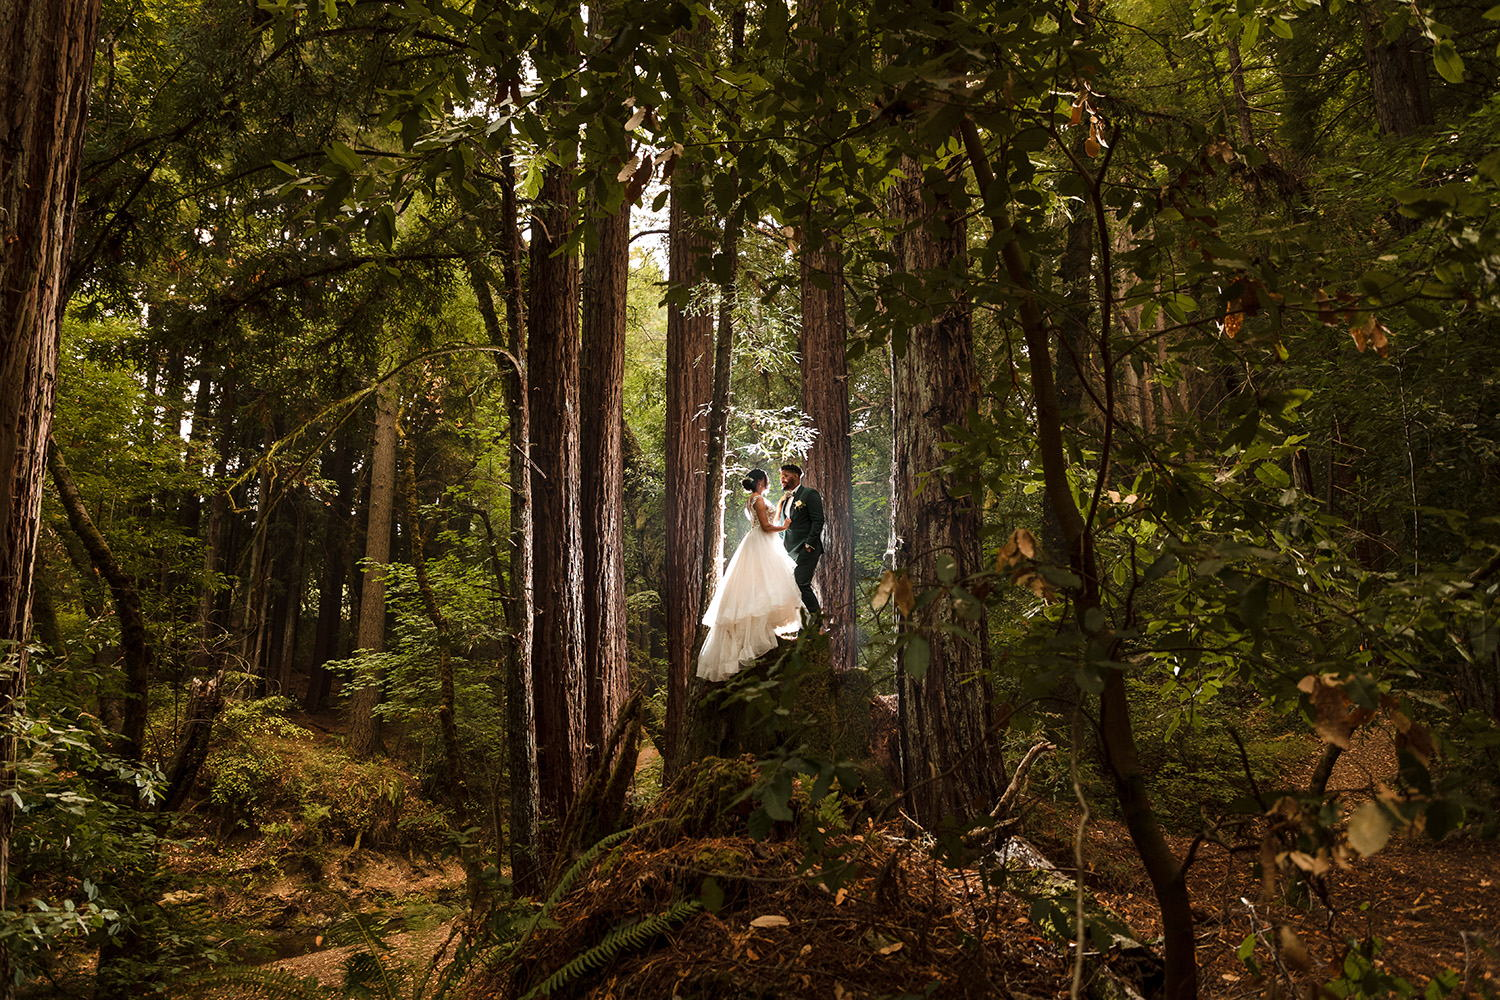 Welcome to our newest wedding photographer, Andrea de Anda Photography!